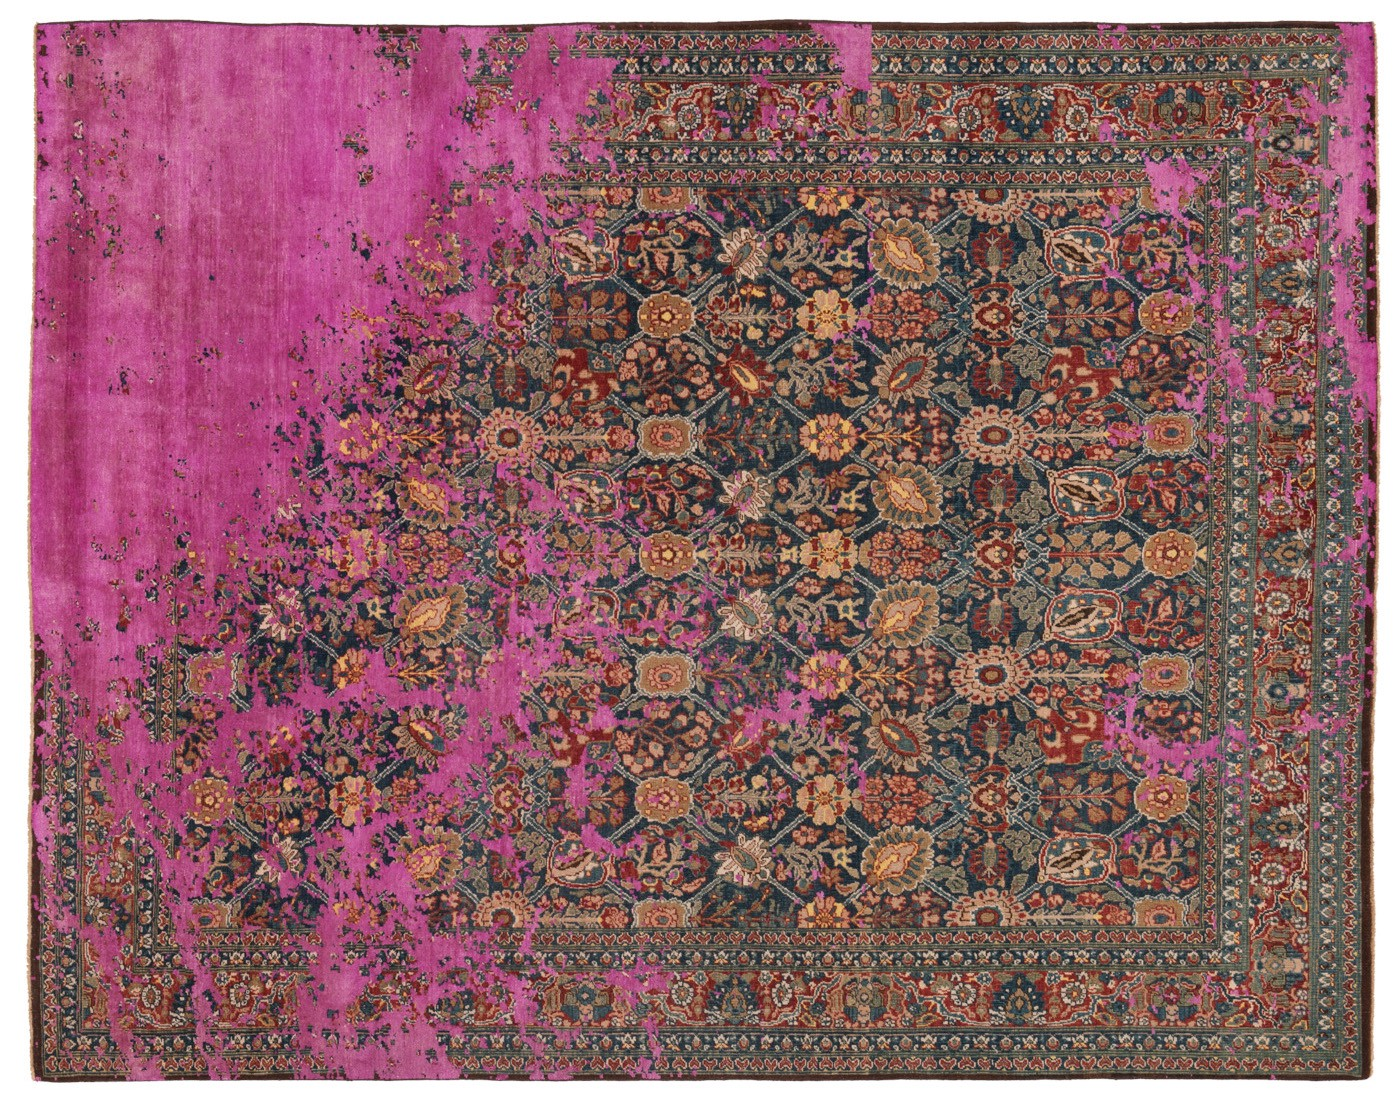 8 Types Of Area Rugs Area Rugs Are Textile Floor Coverings By Anna Samygina Basics Of Interior Design Medium